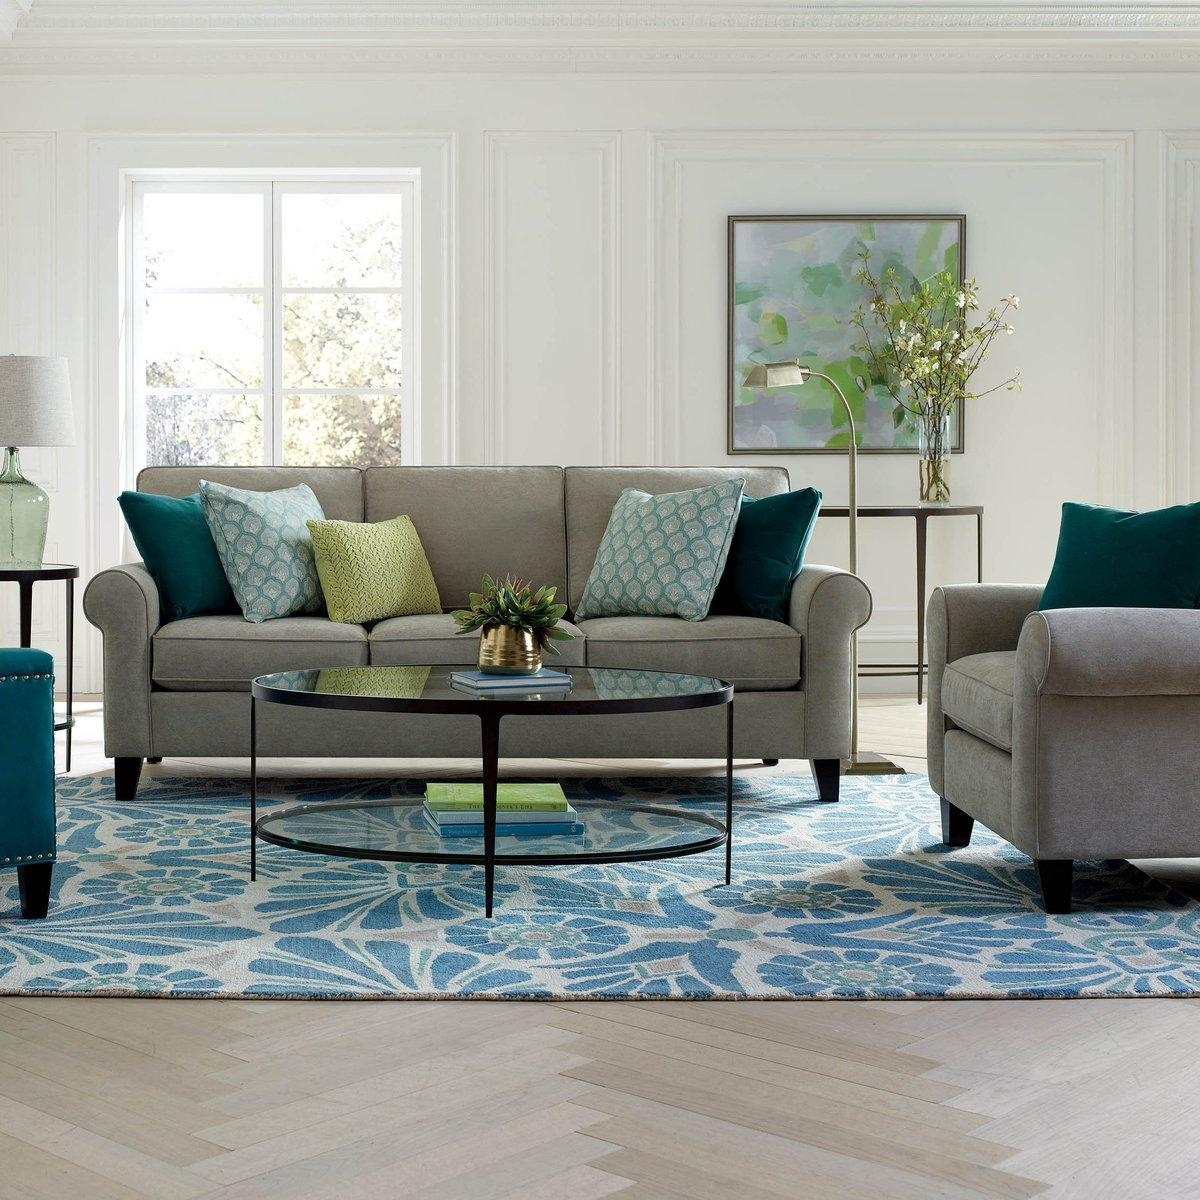 12 Things You Might Not Know About Top 100 Furniture Today Boston Inside Boston Interiors Sofas (Image 1 of 20)